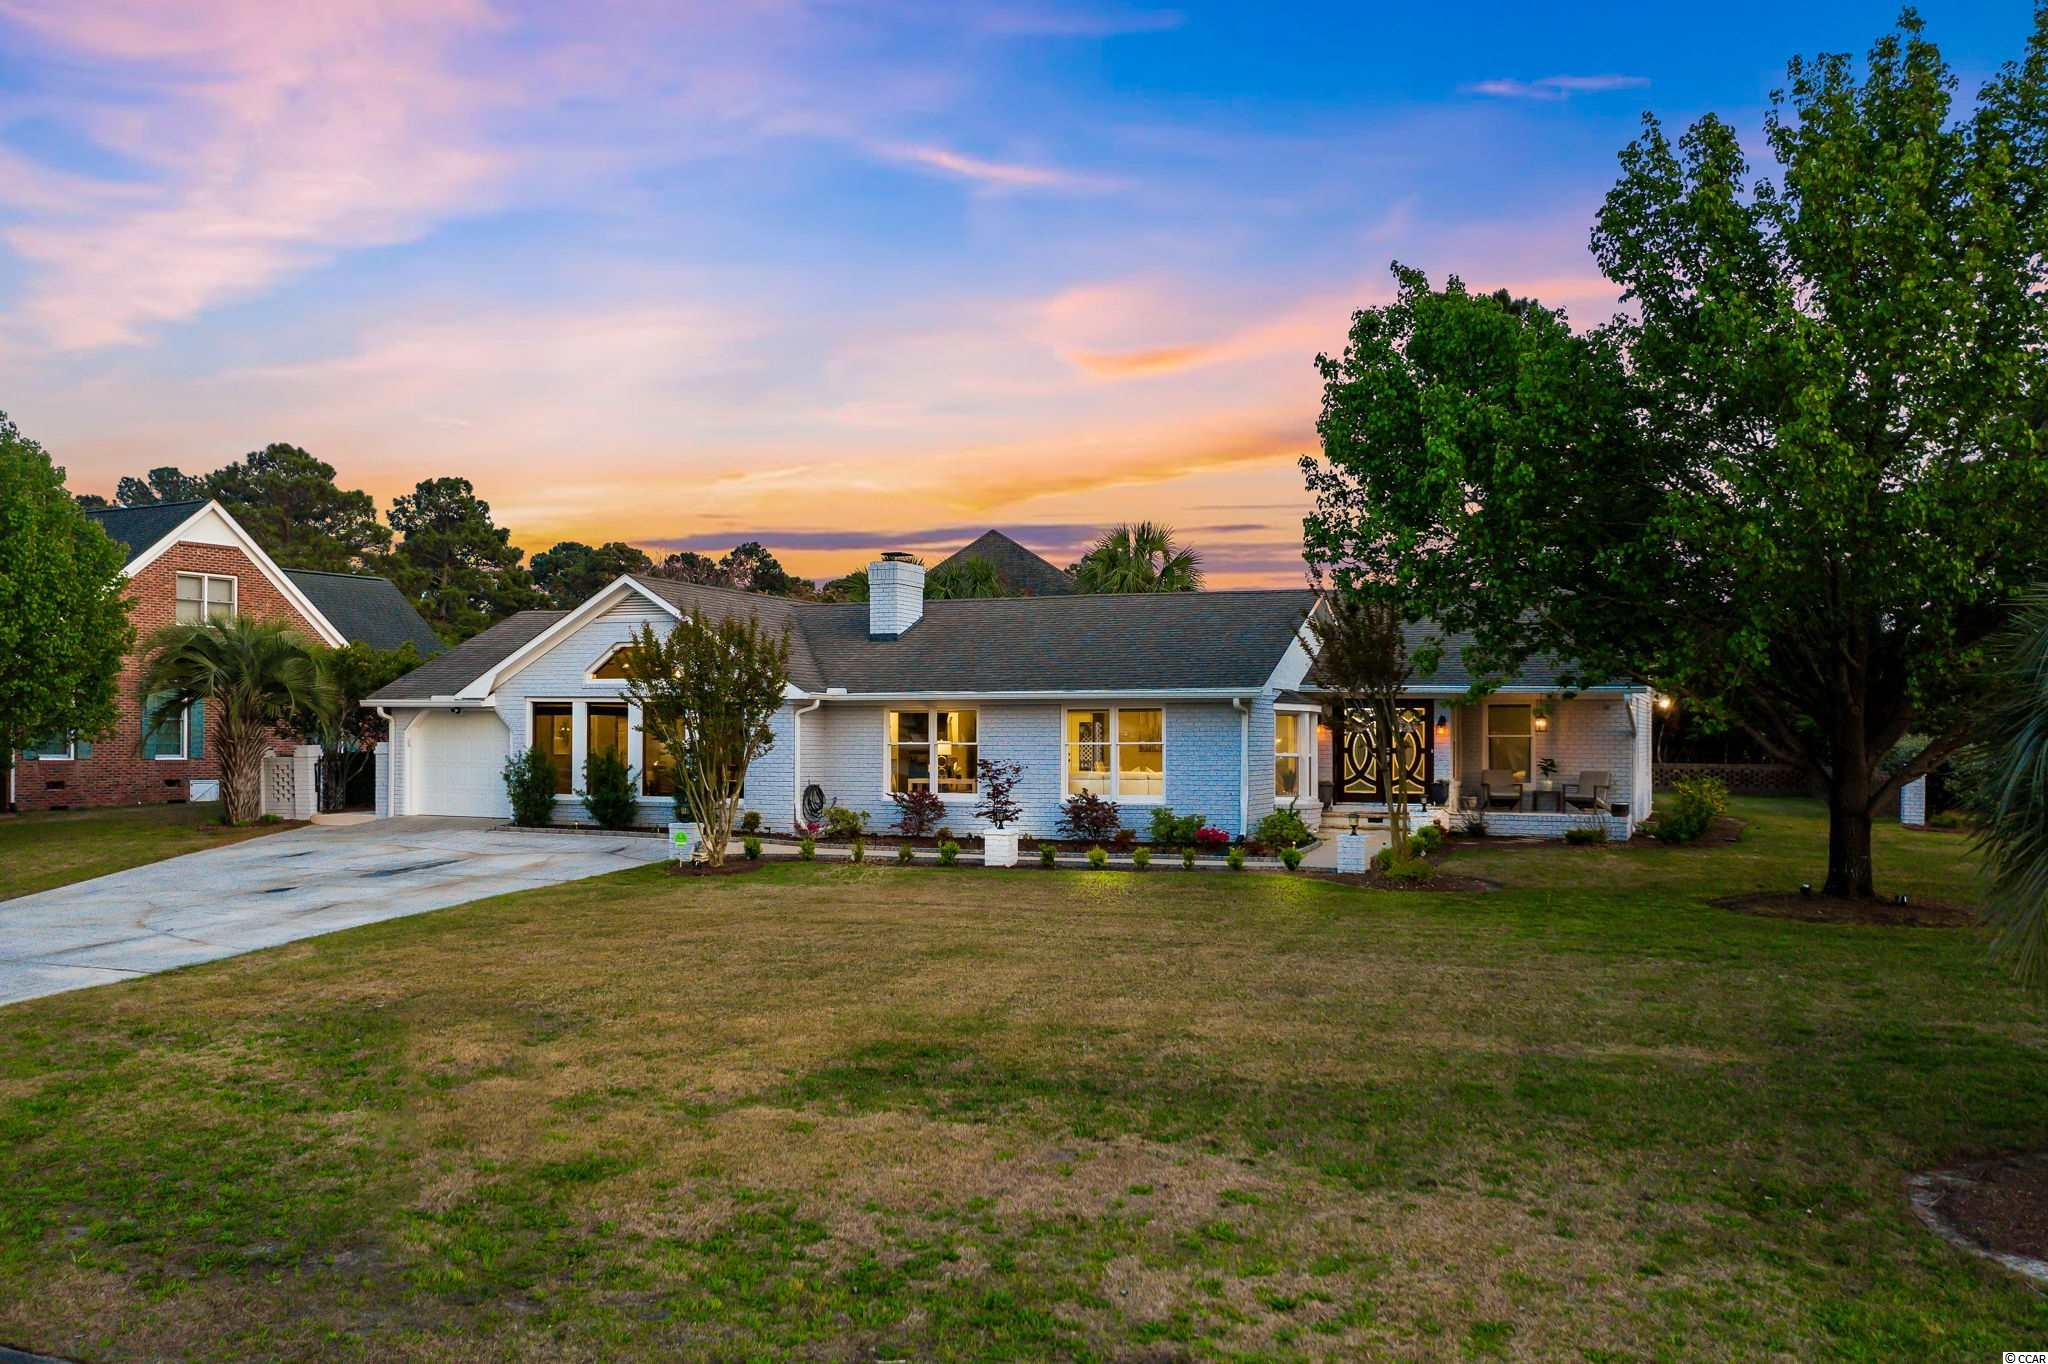 Welcome to this gorgeous ranch in the highly desirable neighborhood of Plantation Point. This home sits on an oversized corner lot, which includes an in-ground pool, outdoor shower, utility shed, gazebo, and a built in grill. As soon as you enter you are welcomed by the abundance of natural light throughout the entire home. This home feels like a model home with plenty of upgrades, including a poxy floor, tile walk in showers, oversized master custom walk in closet, and fresh paint throughout the entire home. Not a single detail was missed. This is a must see! Being fully renovated, having exceptional out door living and only minutes from the beach and restaurants this will make for a wonderful full time home or fun beach getaway. Schedule your showing now!